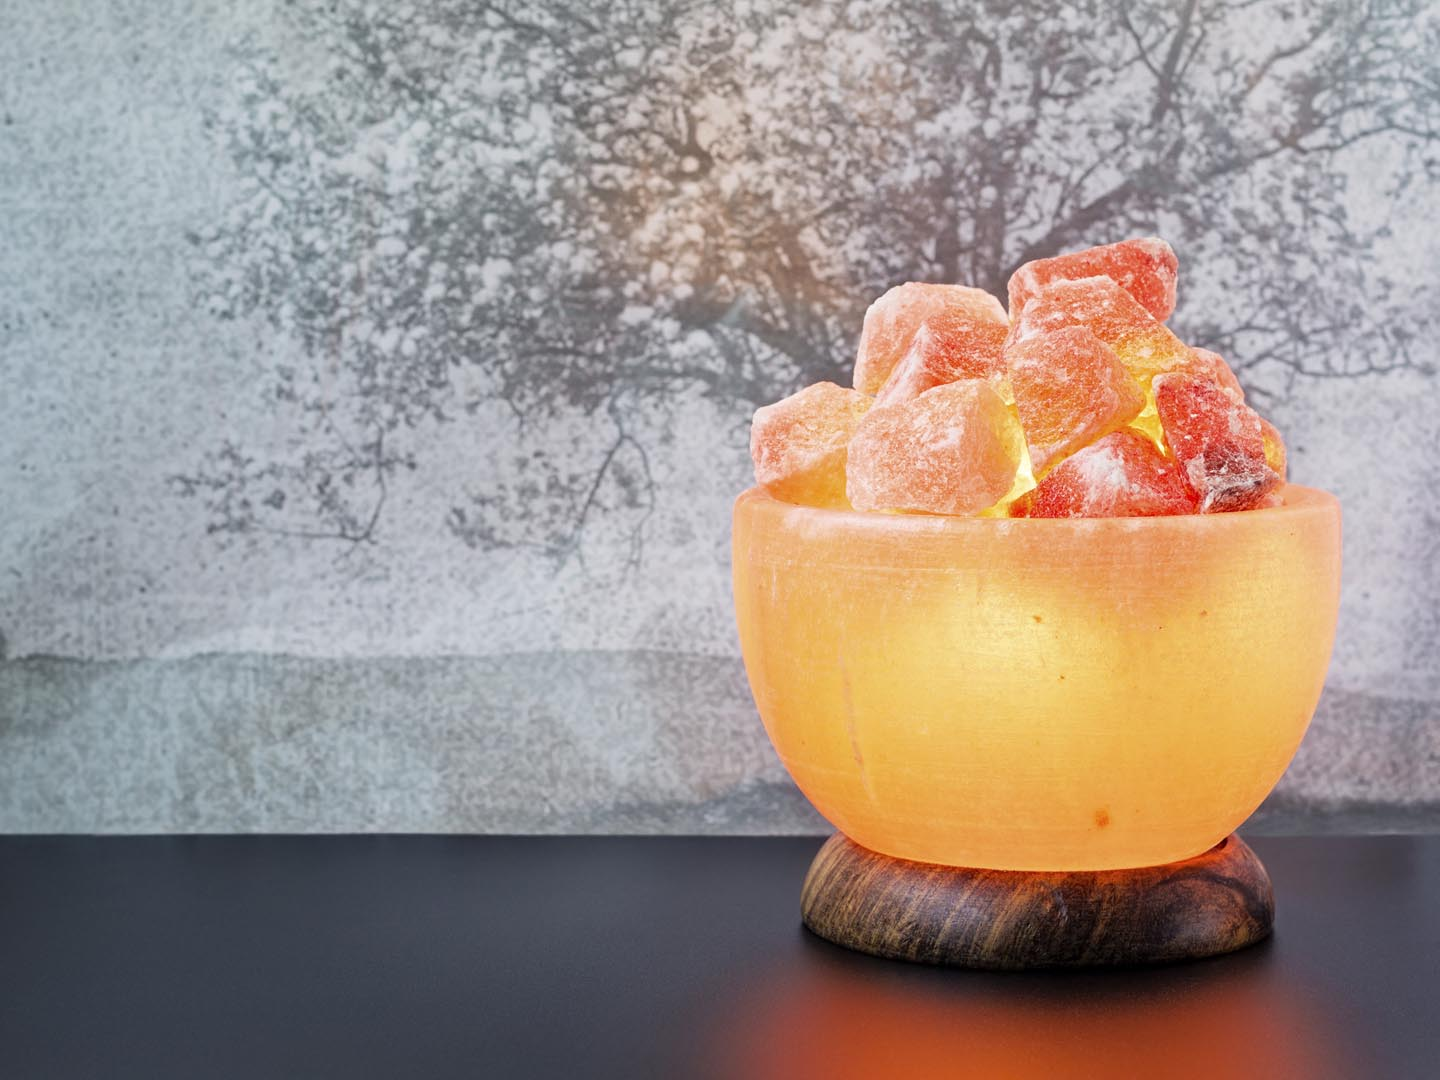 health-wellness_balanced-living_healthy-home_are-himalayan-salt-lamps-worthwhile_2617x1878_000086132623.jpg